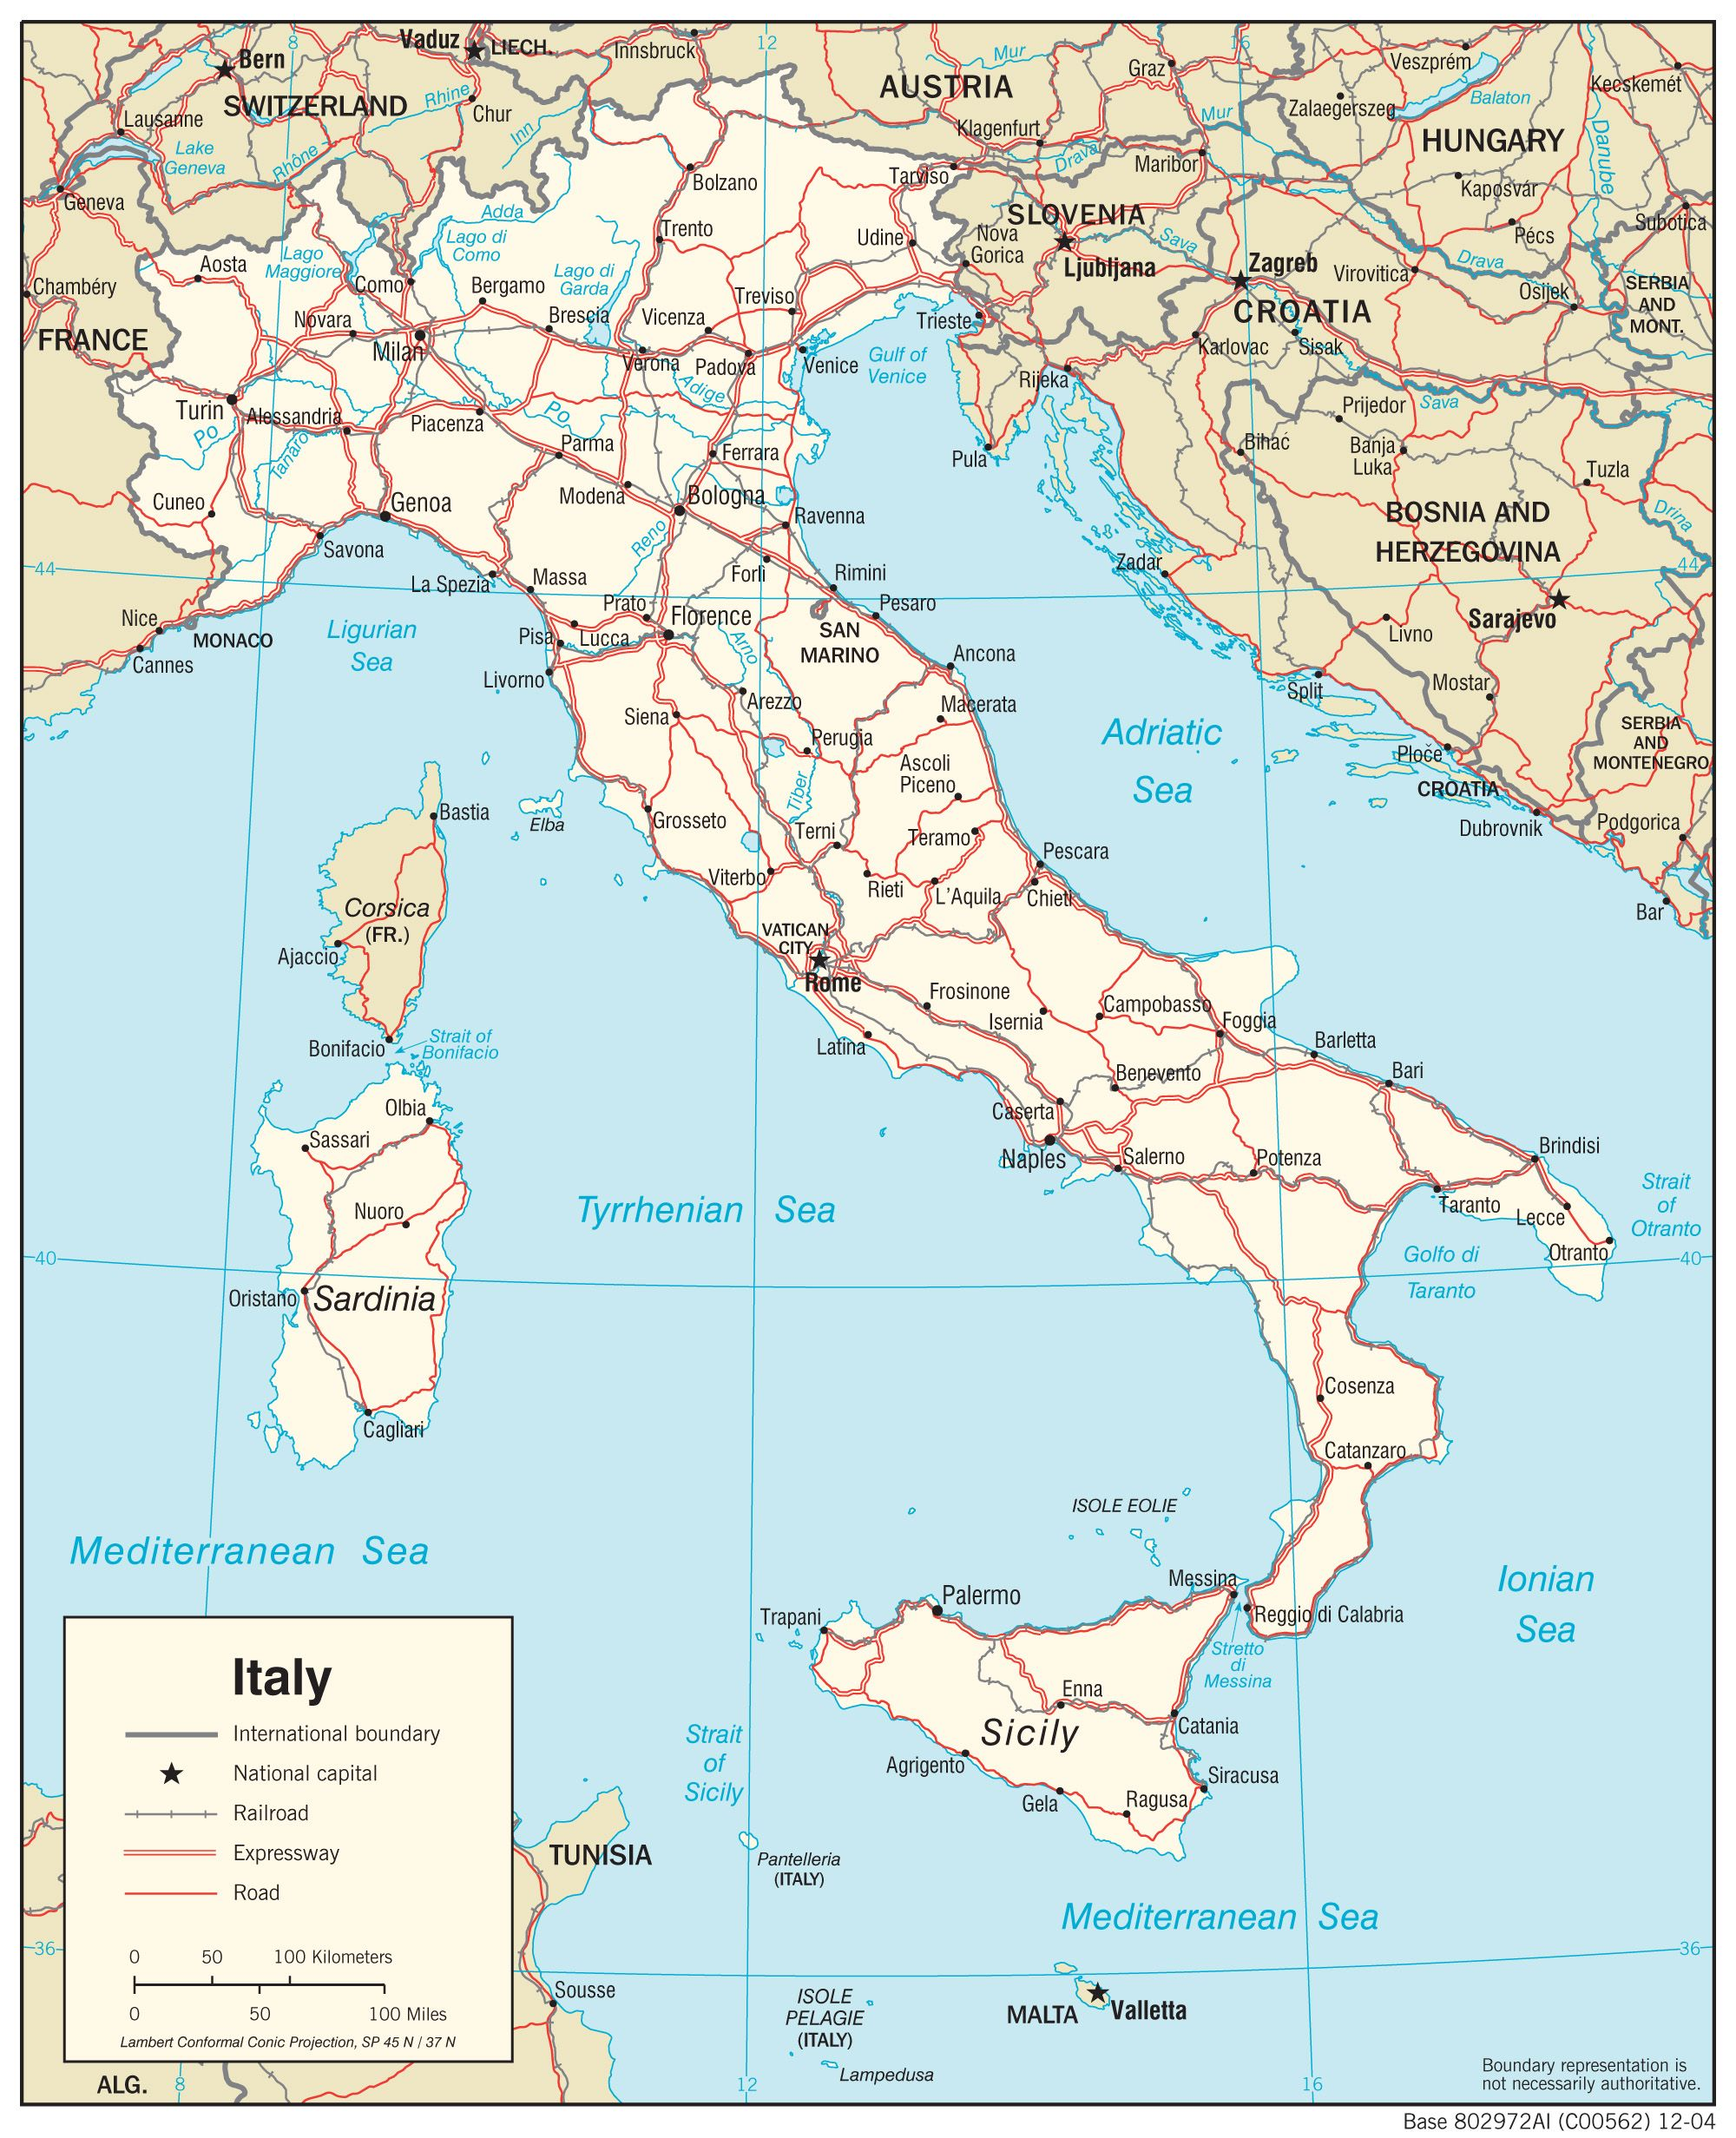 Printable Map Of Italy Free.Map Of Italy Free Large Images Italy Map Italy Map Italy